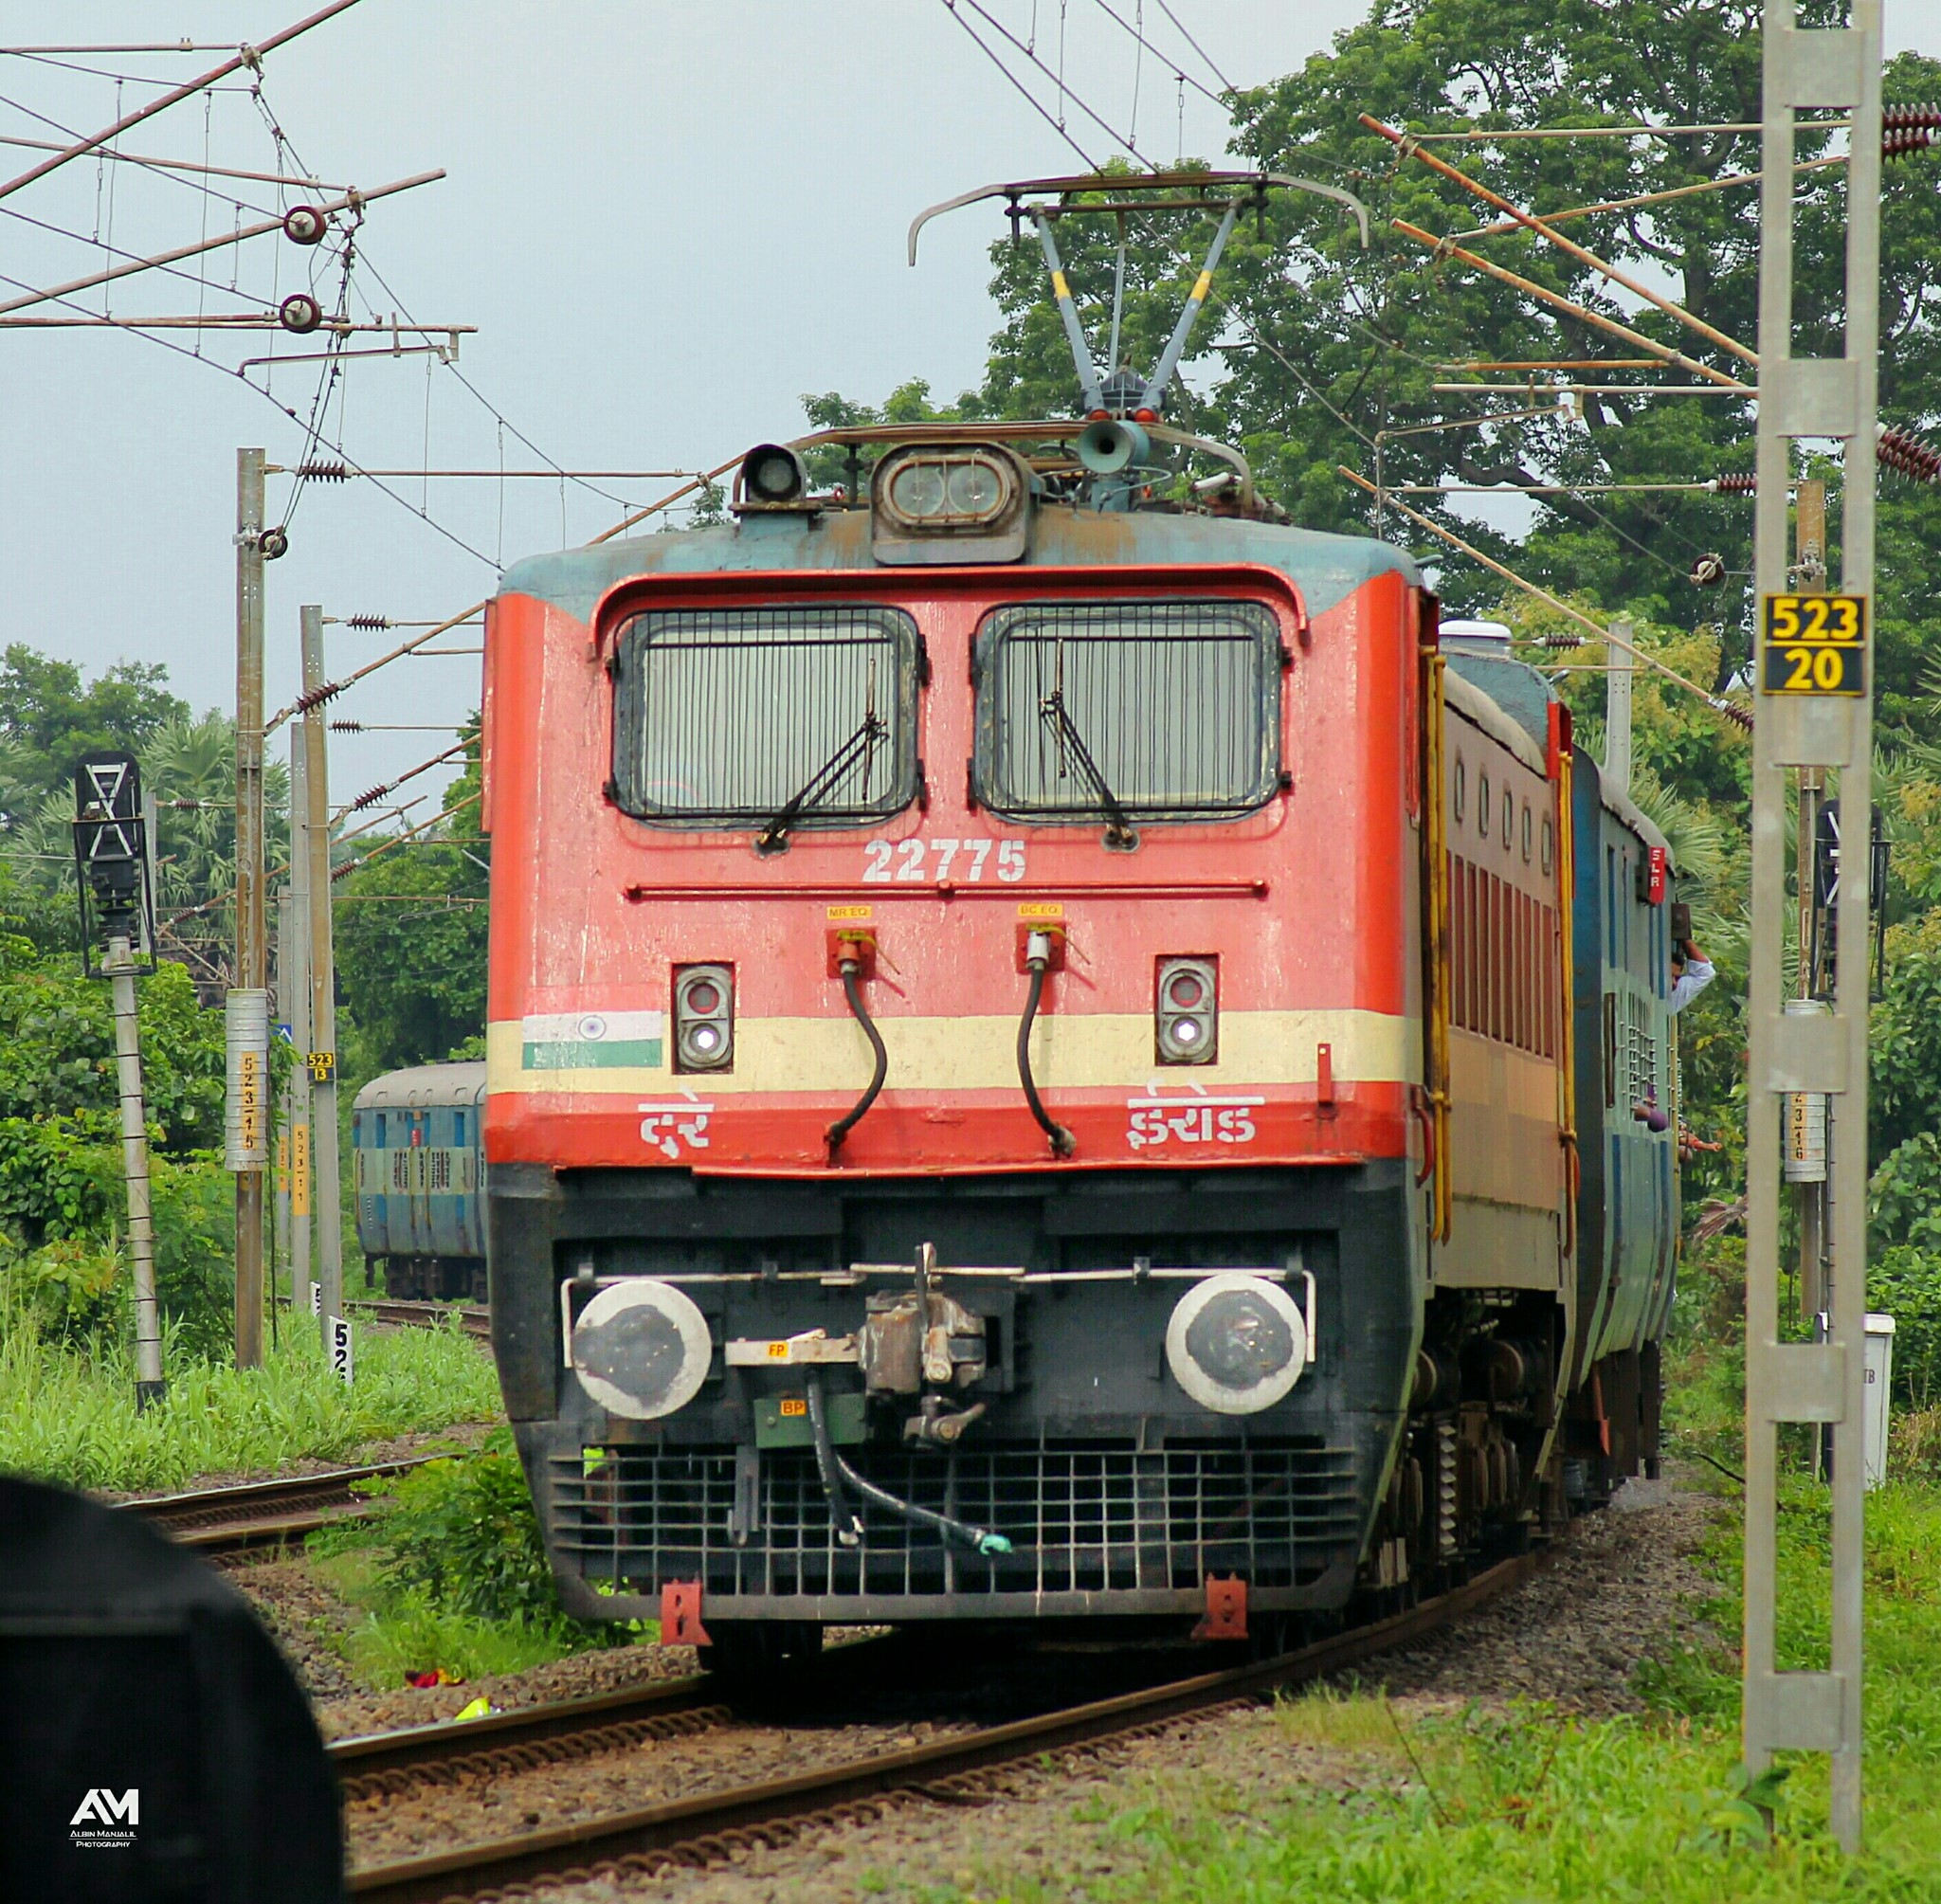 Coimbatore Junction To Dr. MGR Chennai Central 3 Special Daily Train Services By Southern Railways 02680 02676 02674